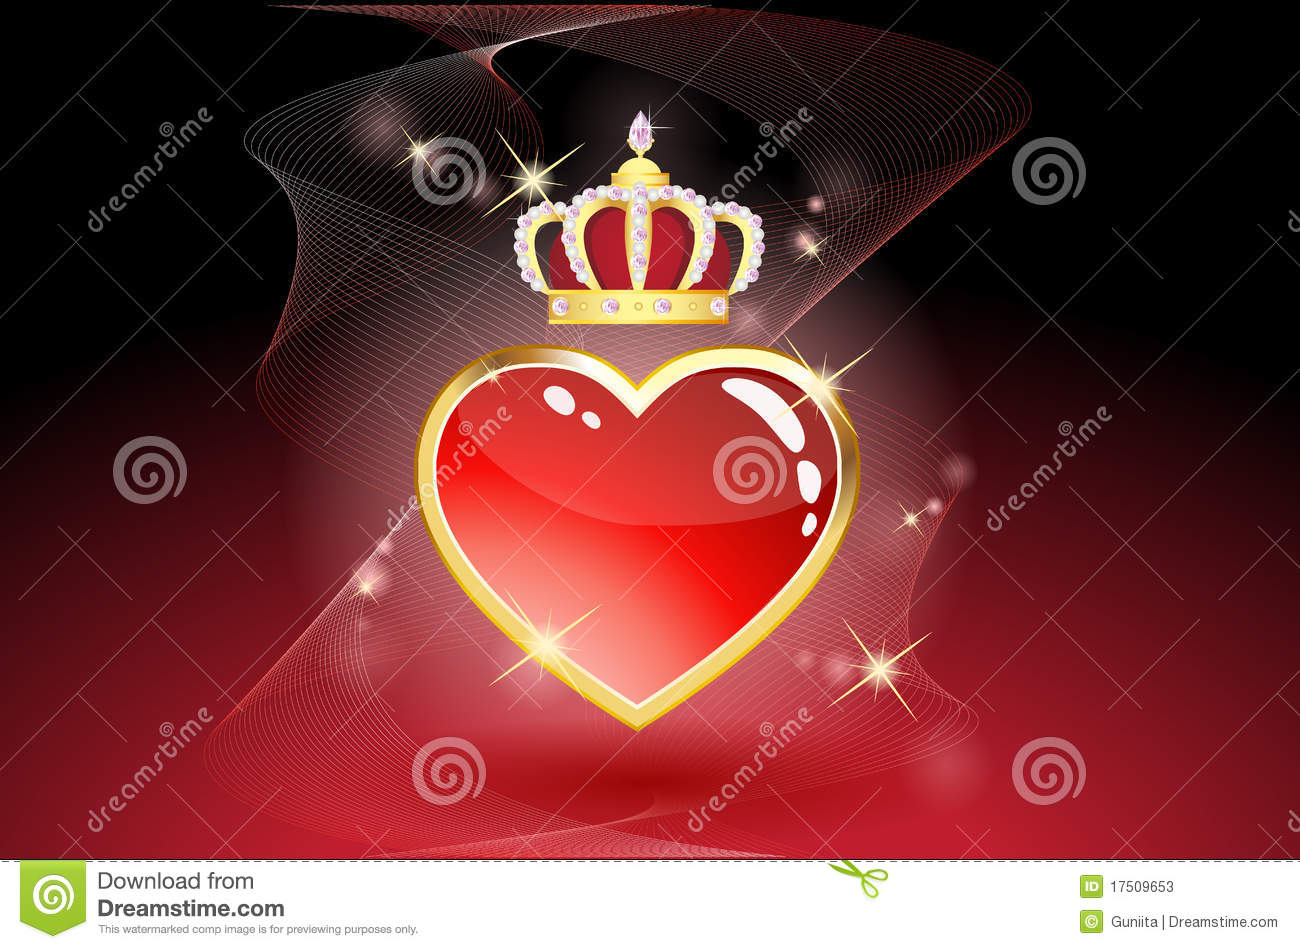 Black Wallpaper Border Red Heart With Crown Stock Illustration Image Of Graphic